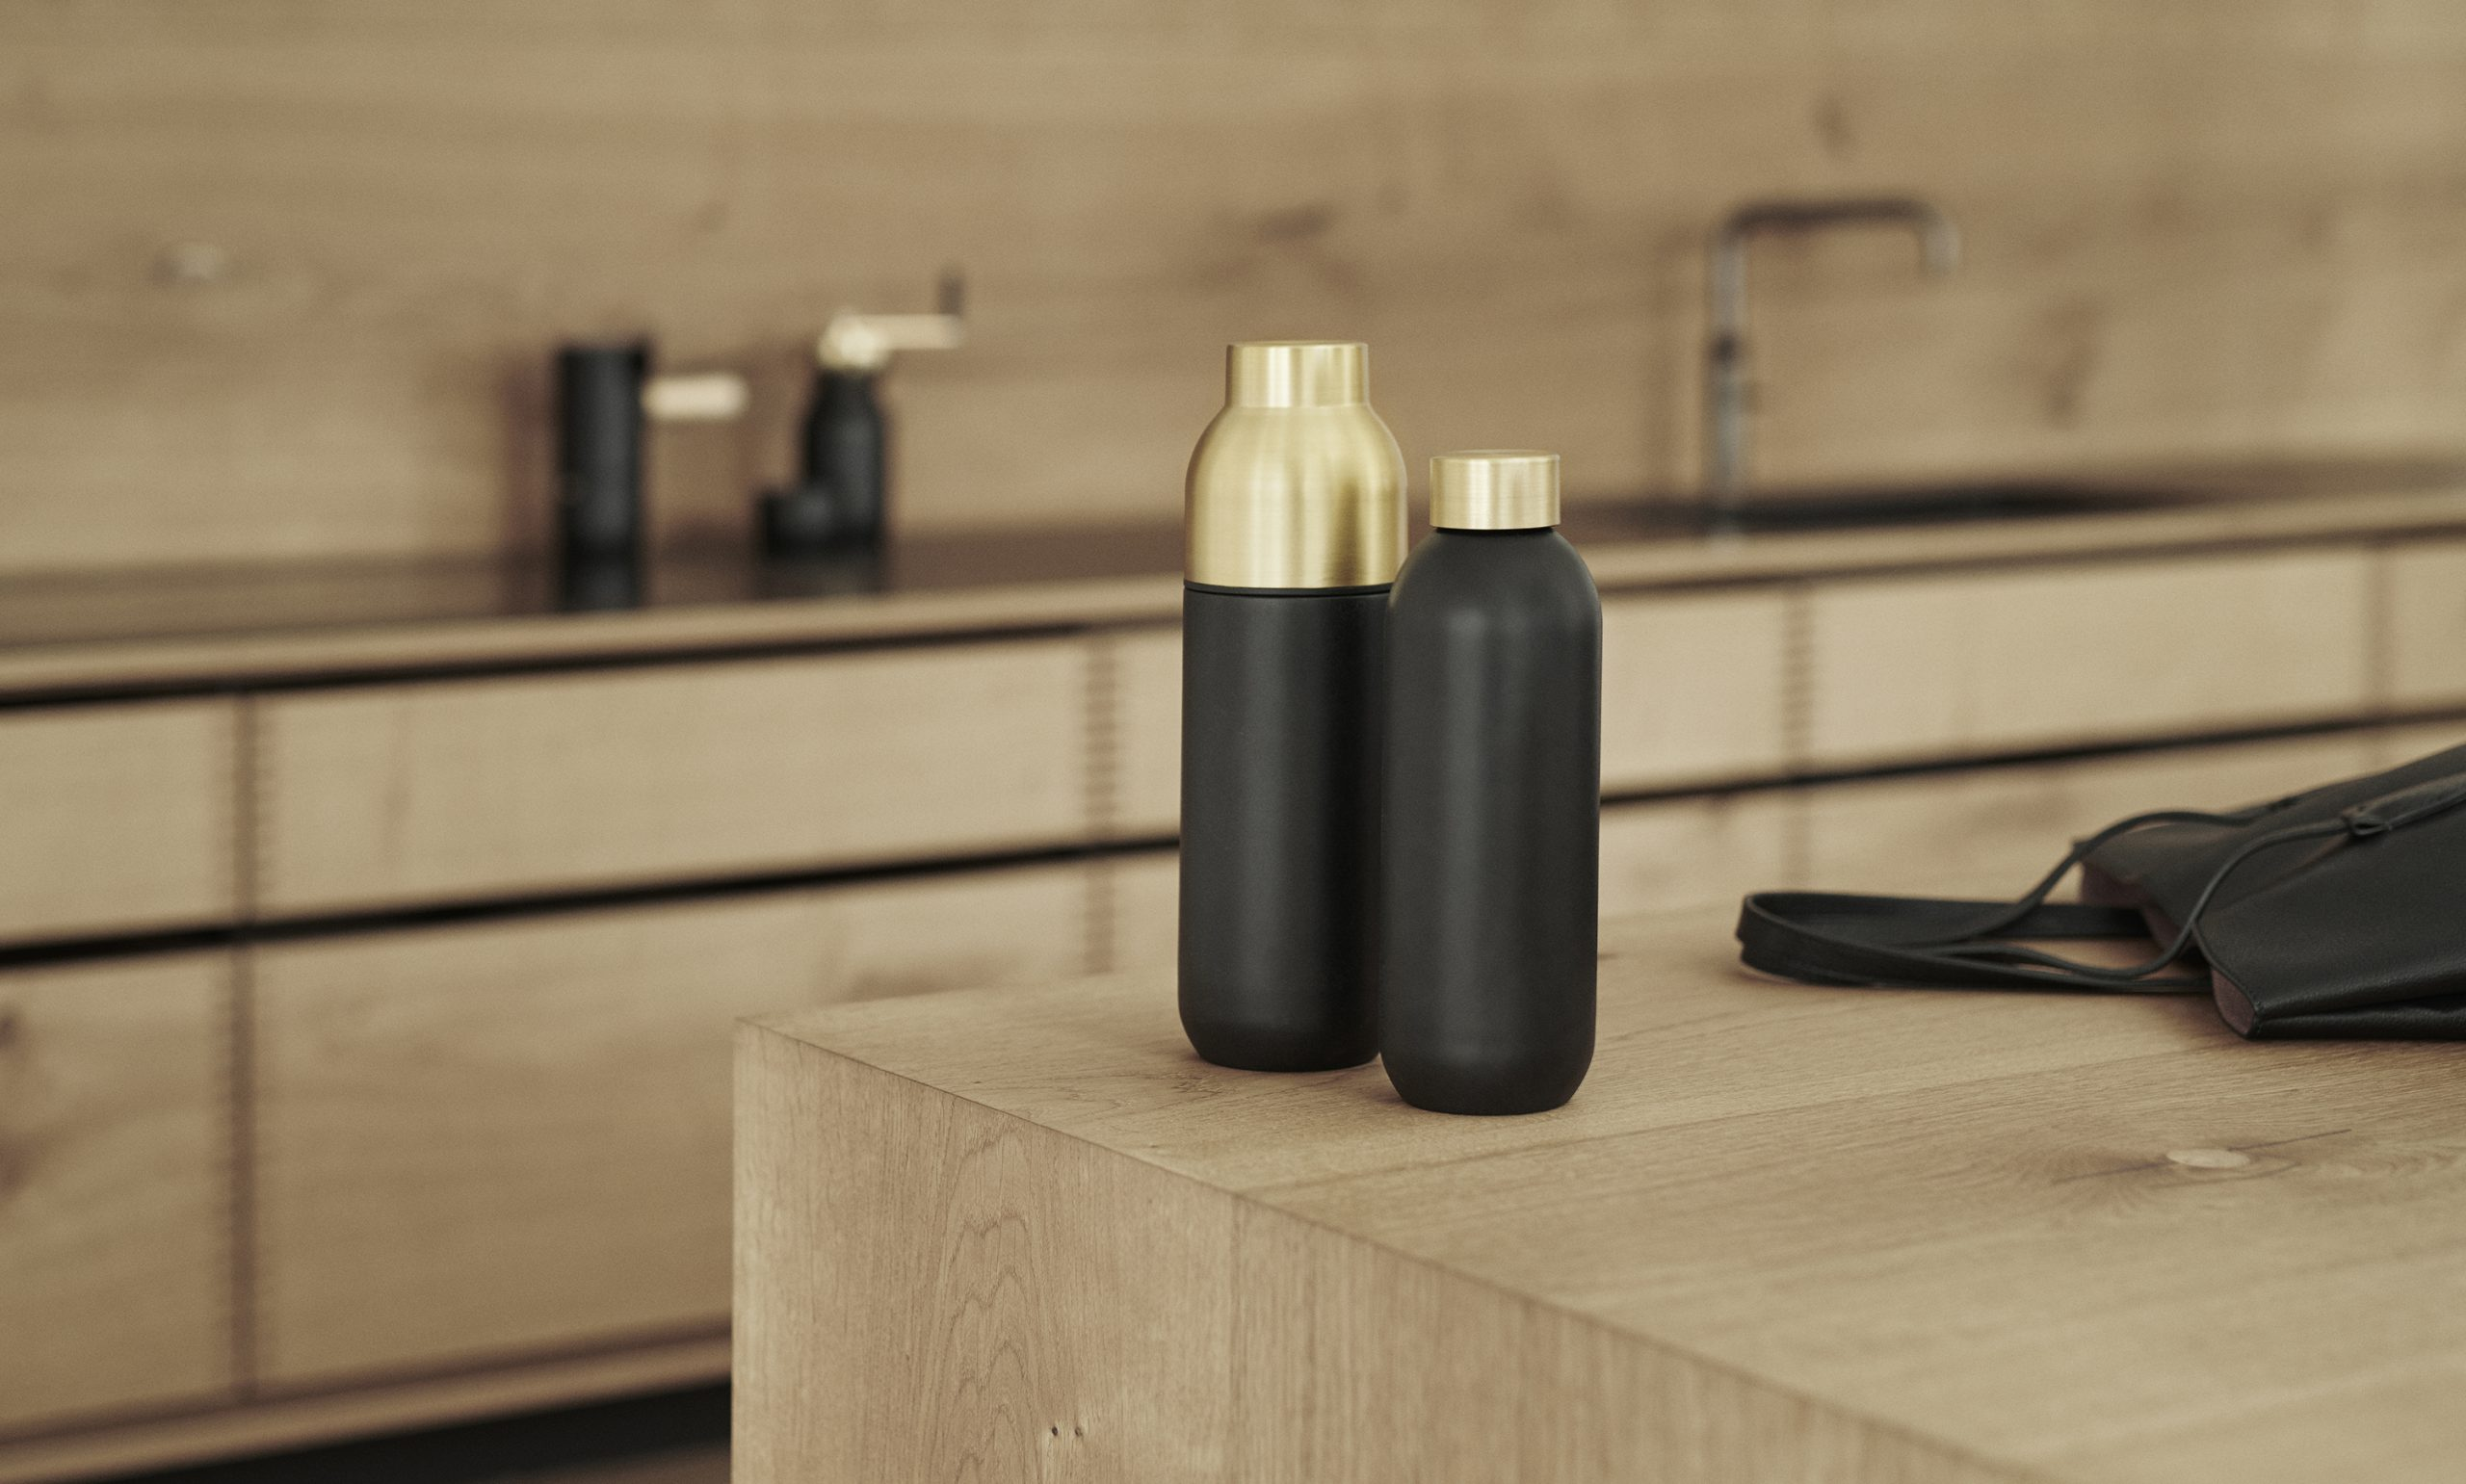 Collar thermo and water bottle by Debiasi Sandri for Stelton